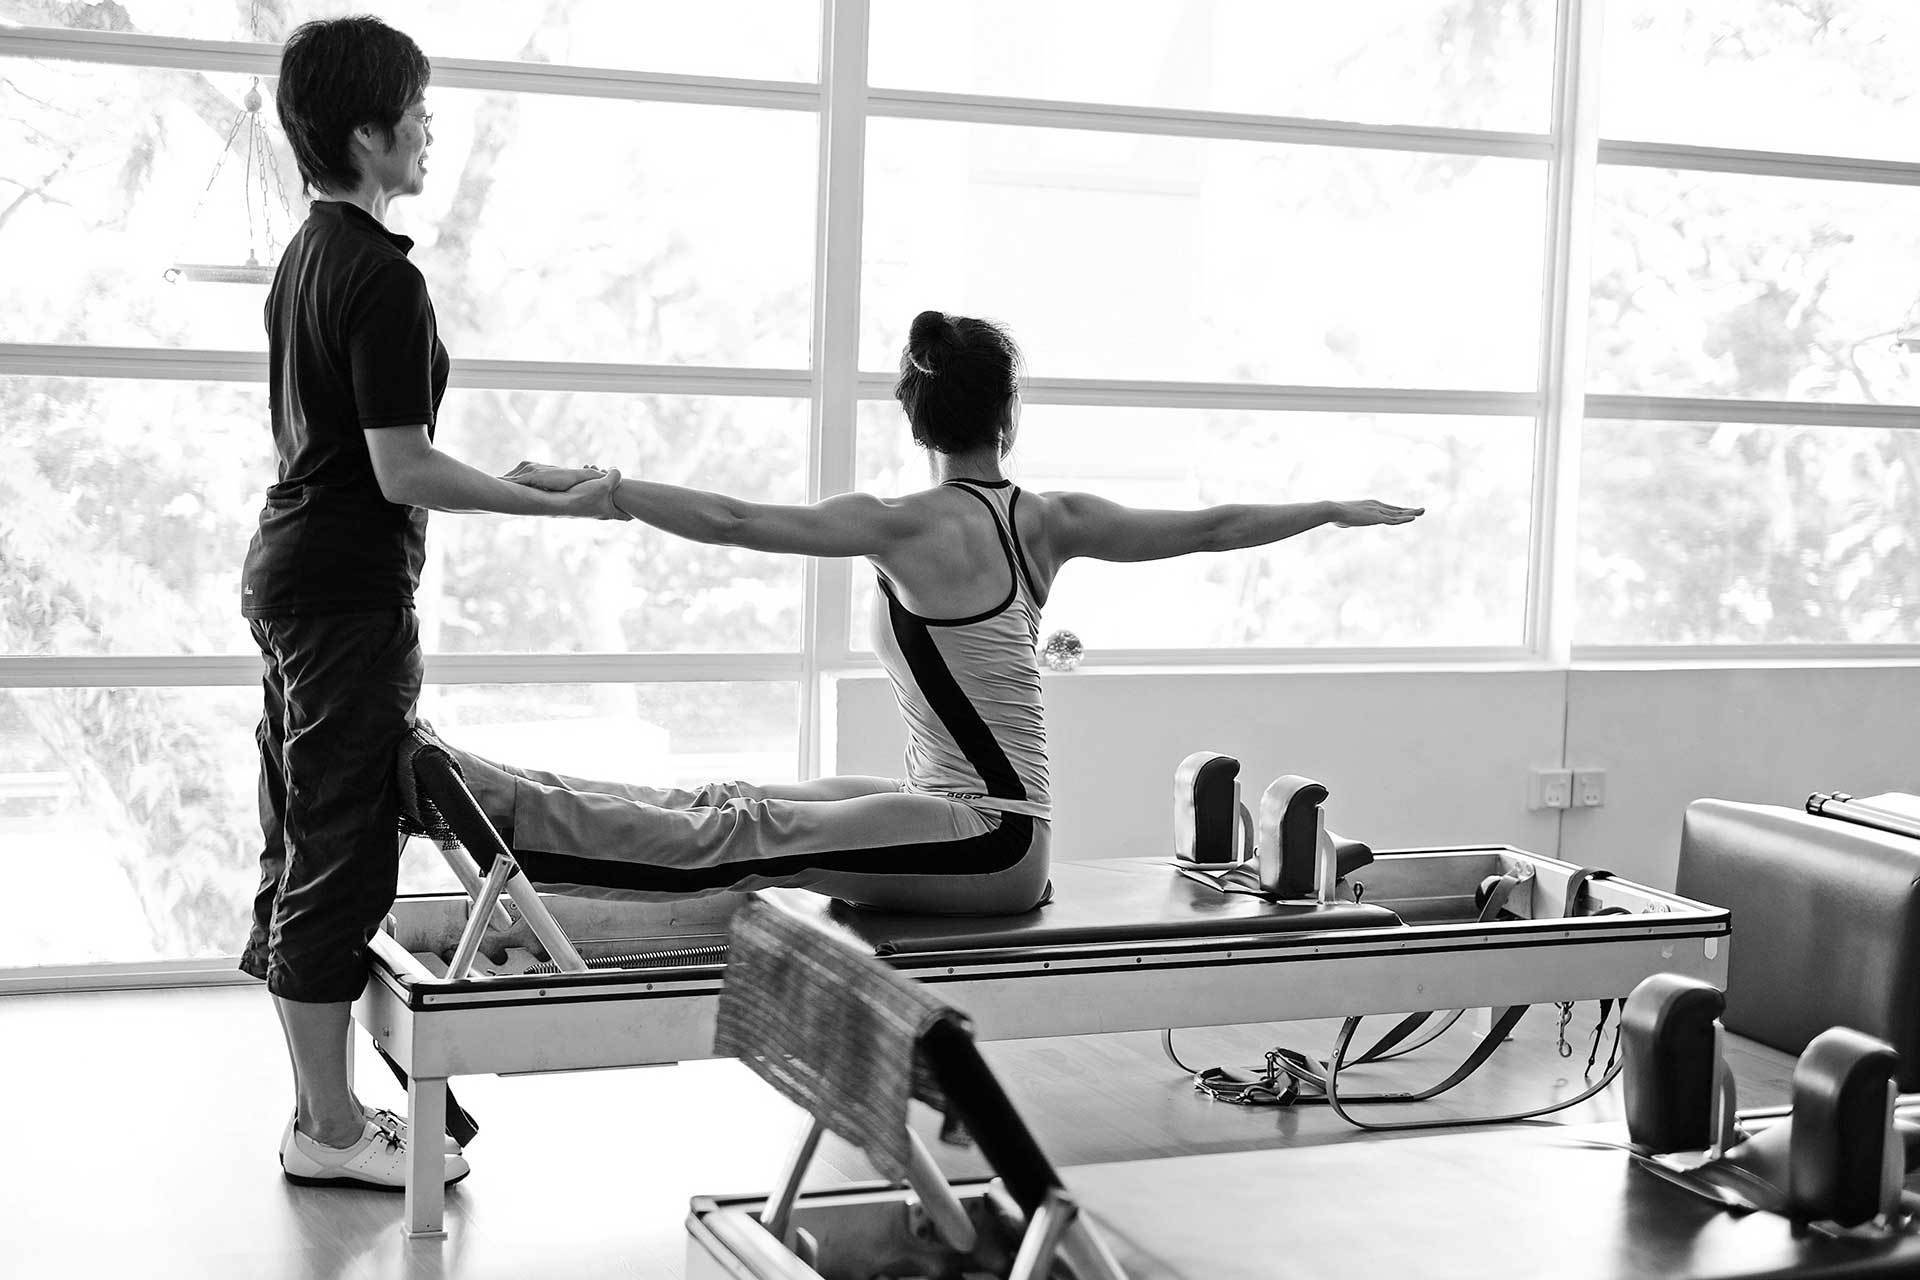 pilates studio in singapore - slider 14